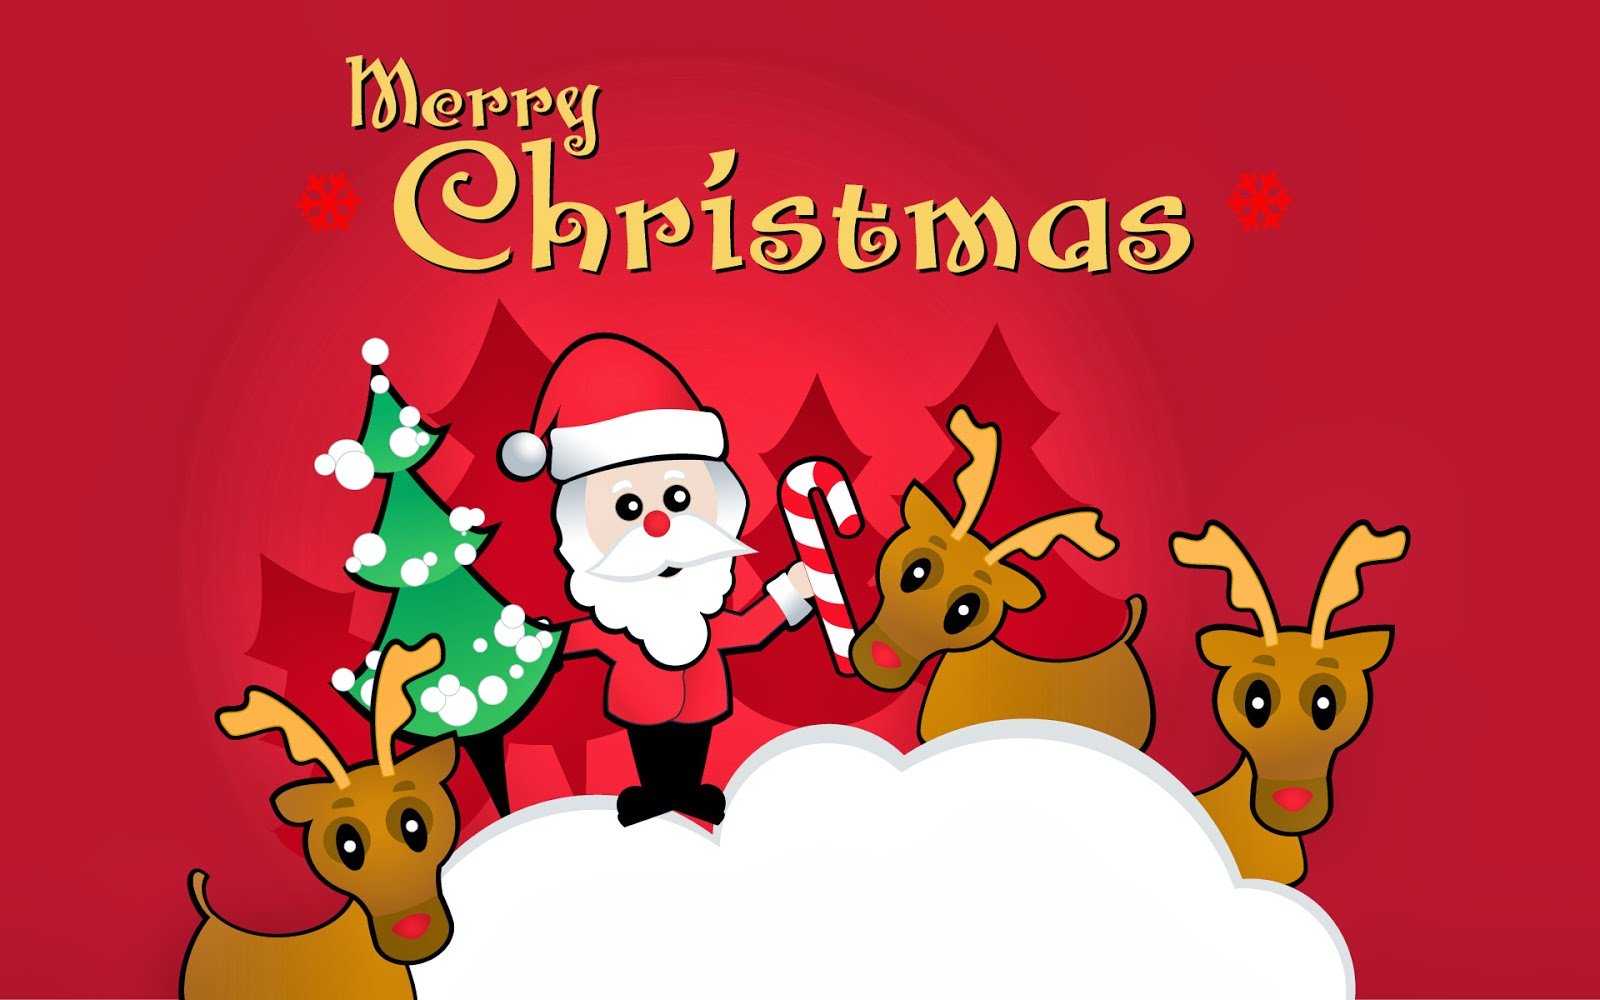 Merry christmas santa lyrics